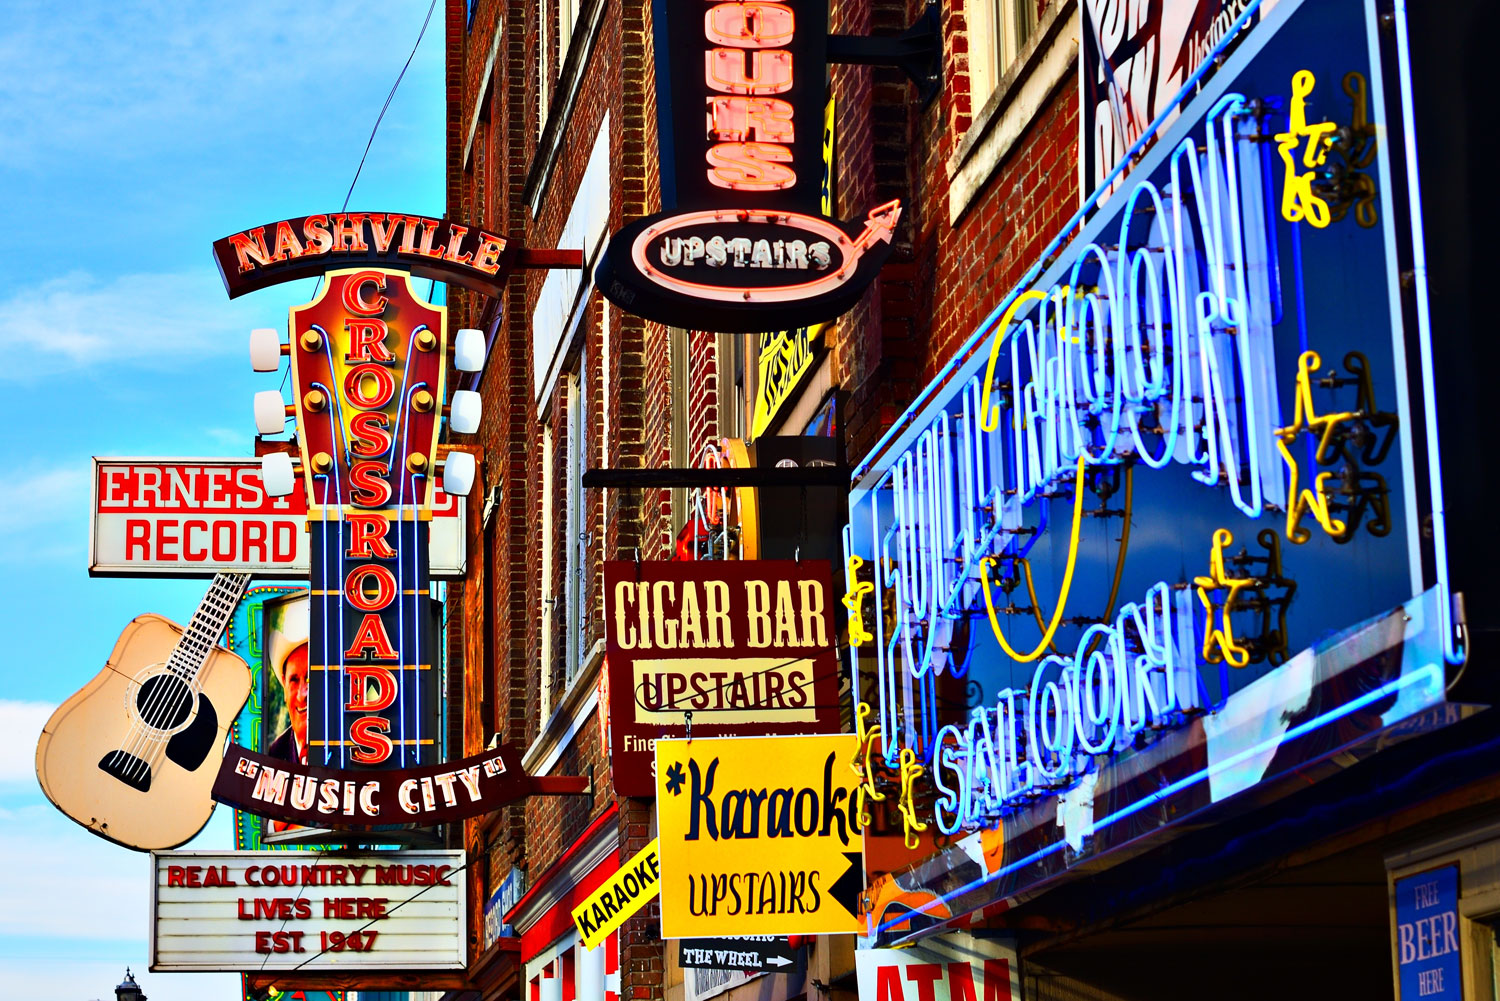 Nashville, Tennessee in America's Deep South.